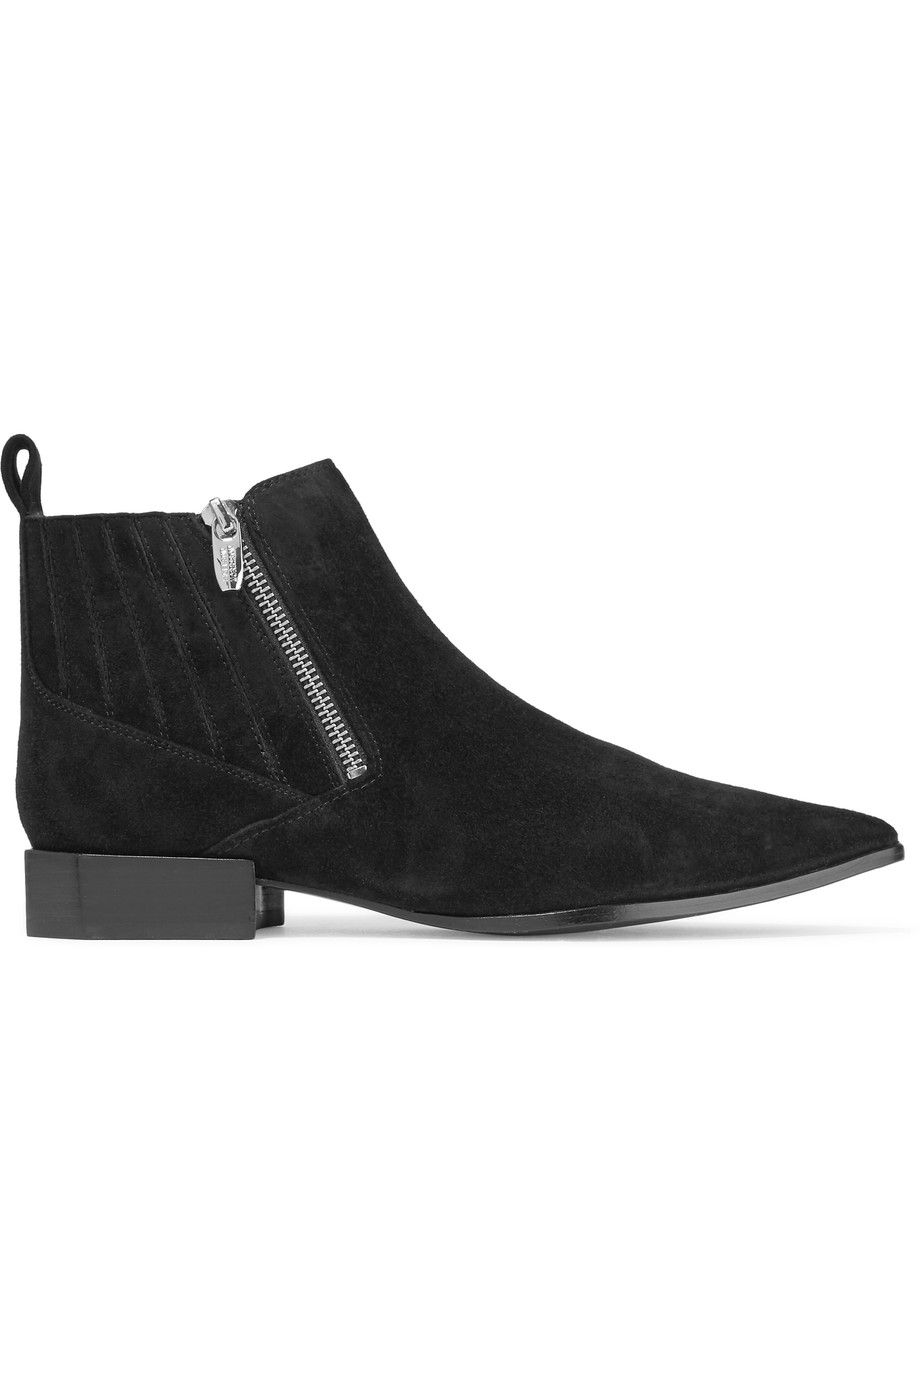 Shop on-sale Sigerson Morrison Bambie suede ankle boots.